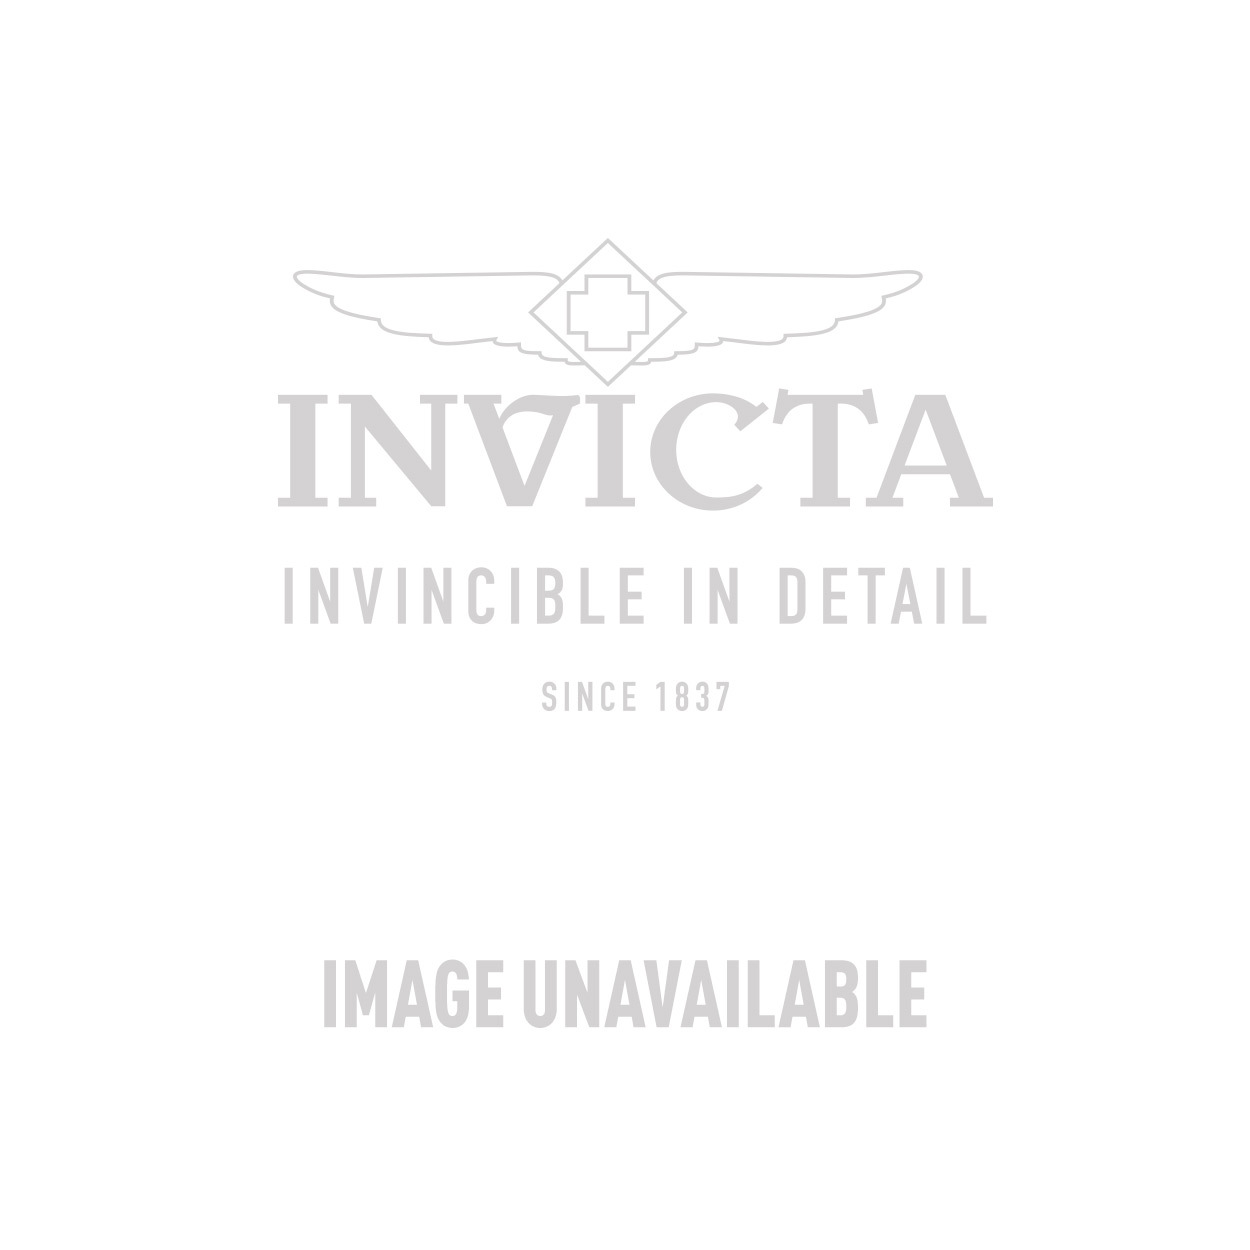 Invicta Specialty Swiss Movement Quartz Watch - Stainless Steel case Stainless Steel band - Model 0617